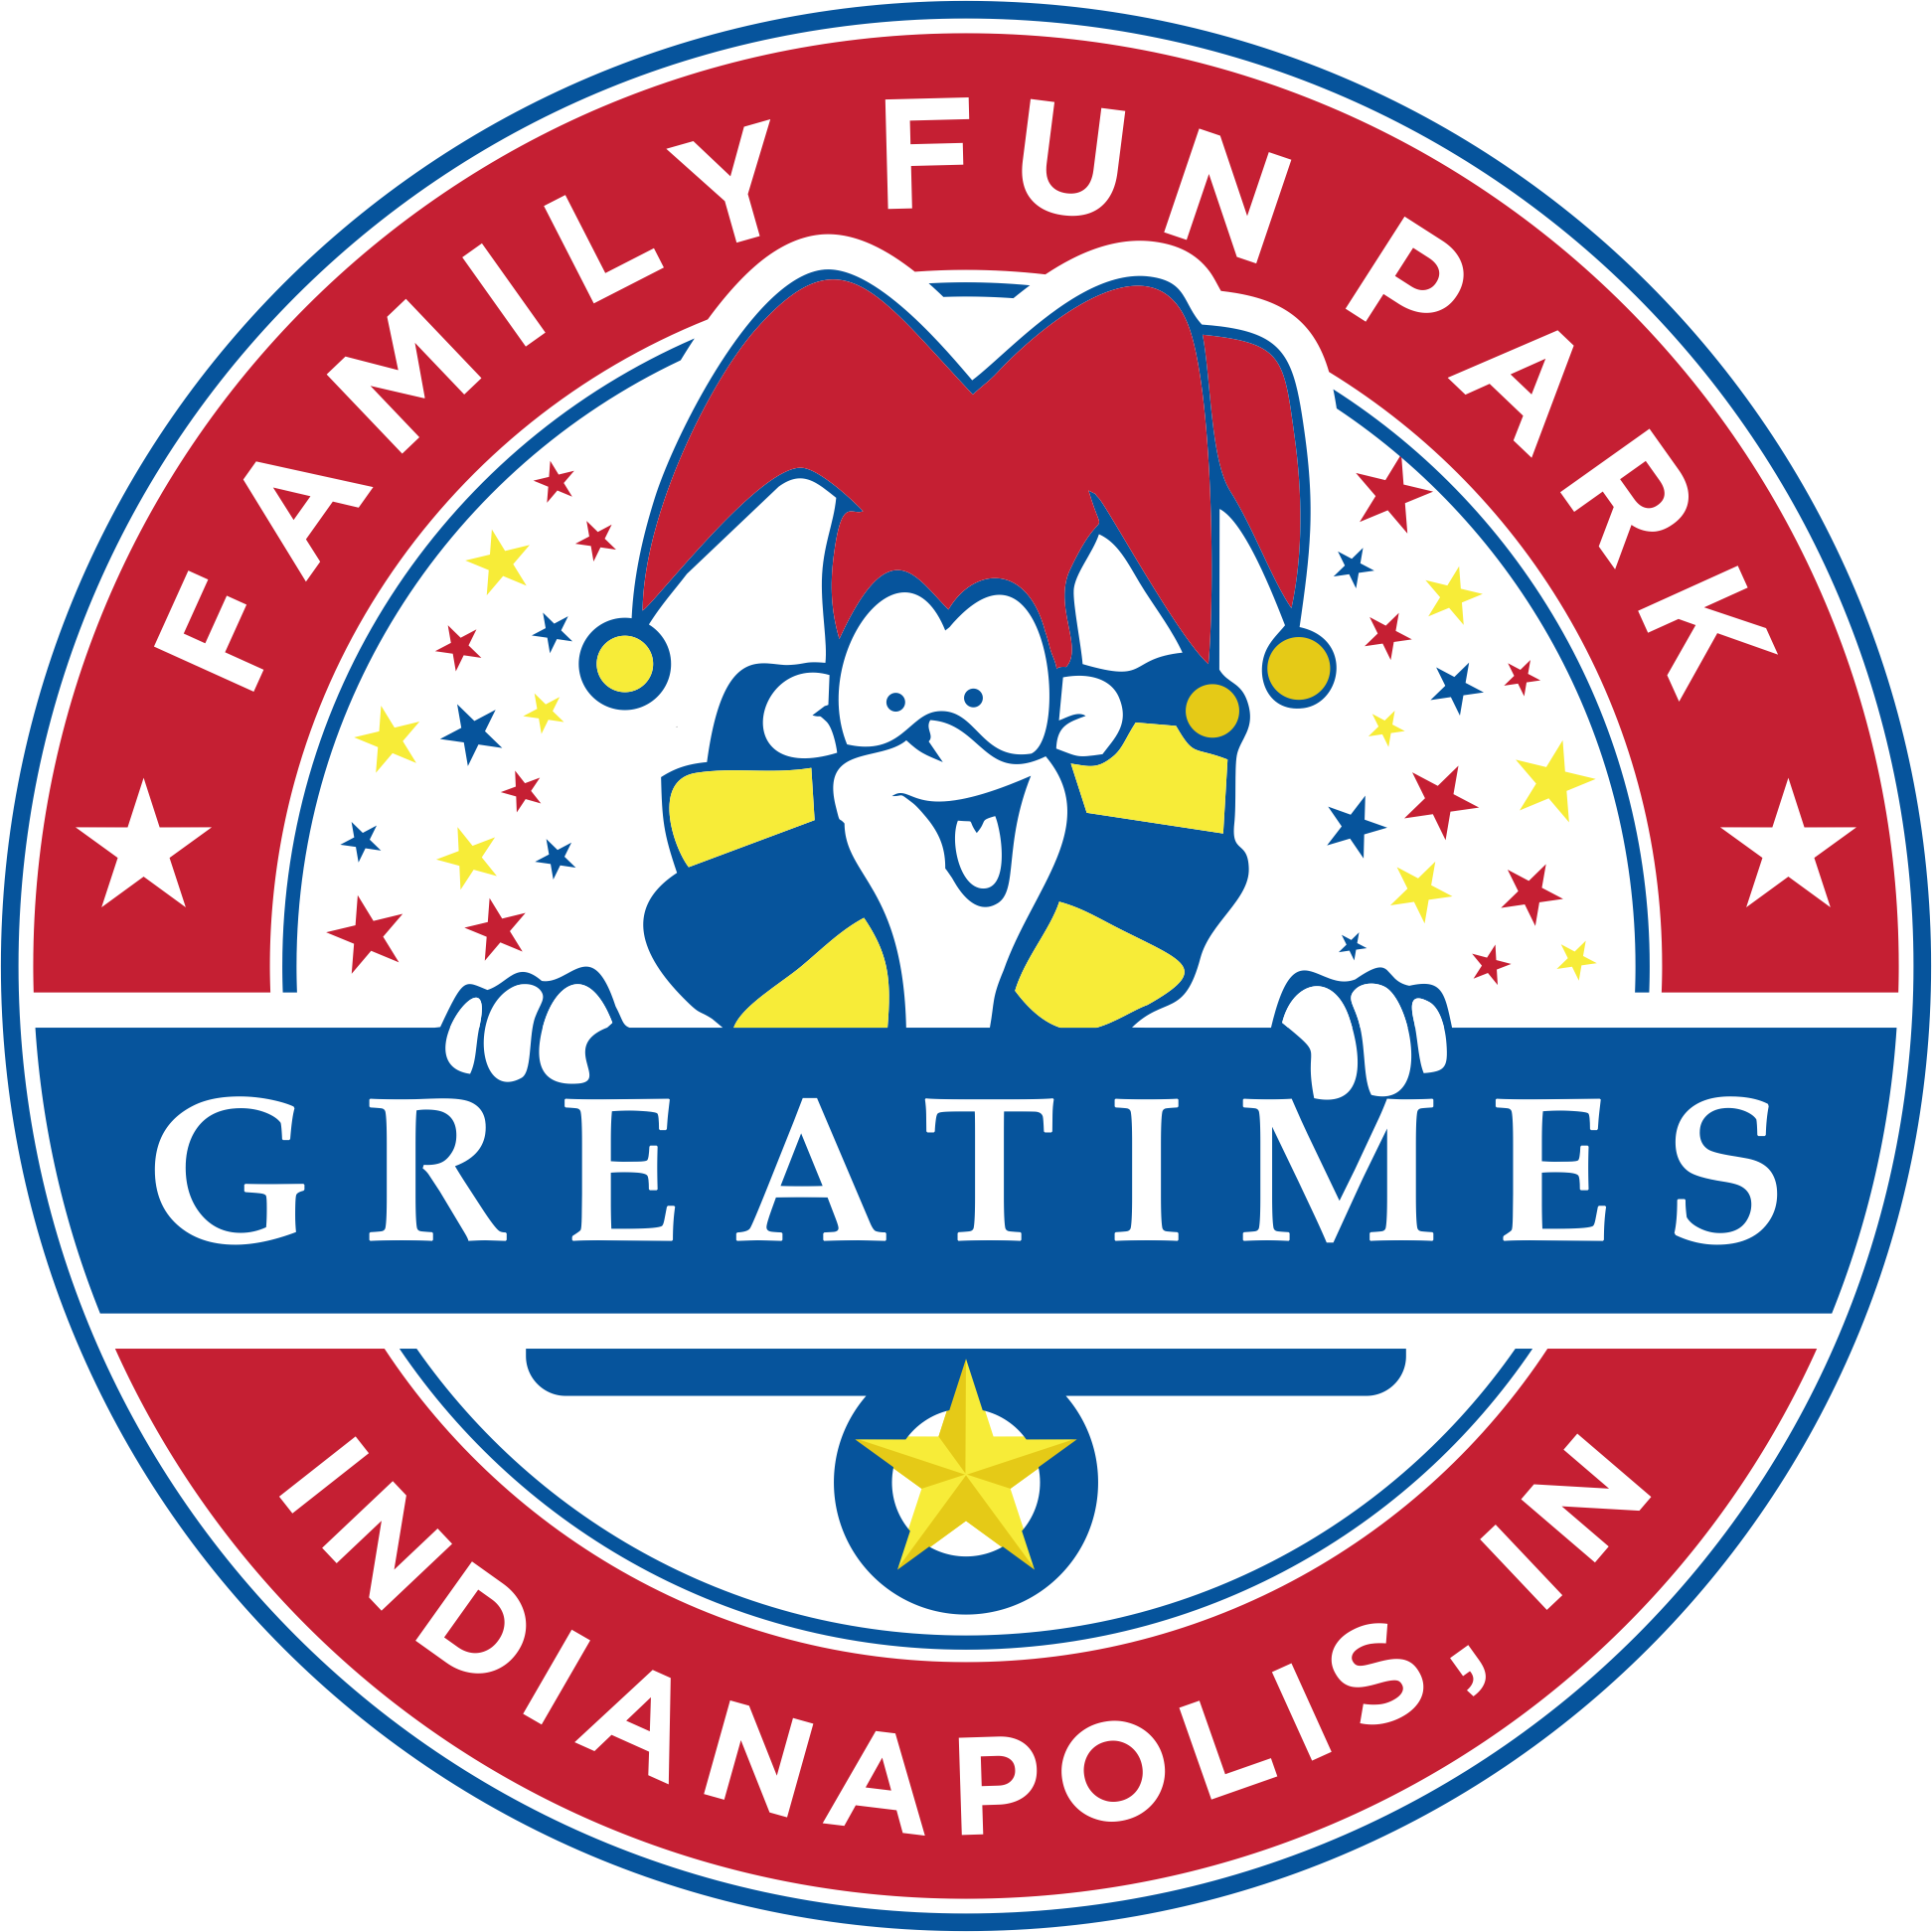 Greatimes Fun Park | Indianapolis, IN 46203